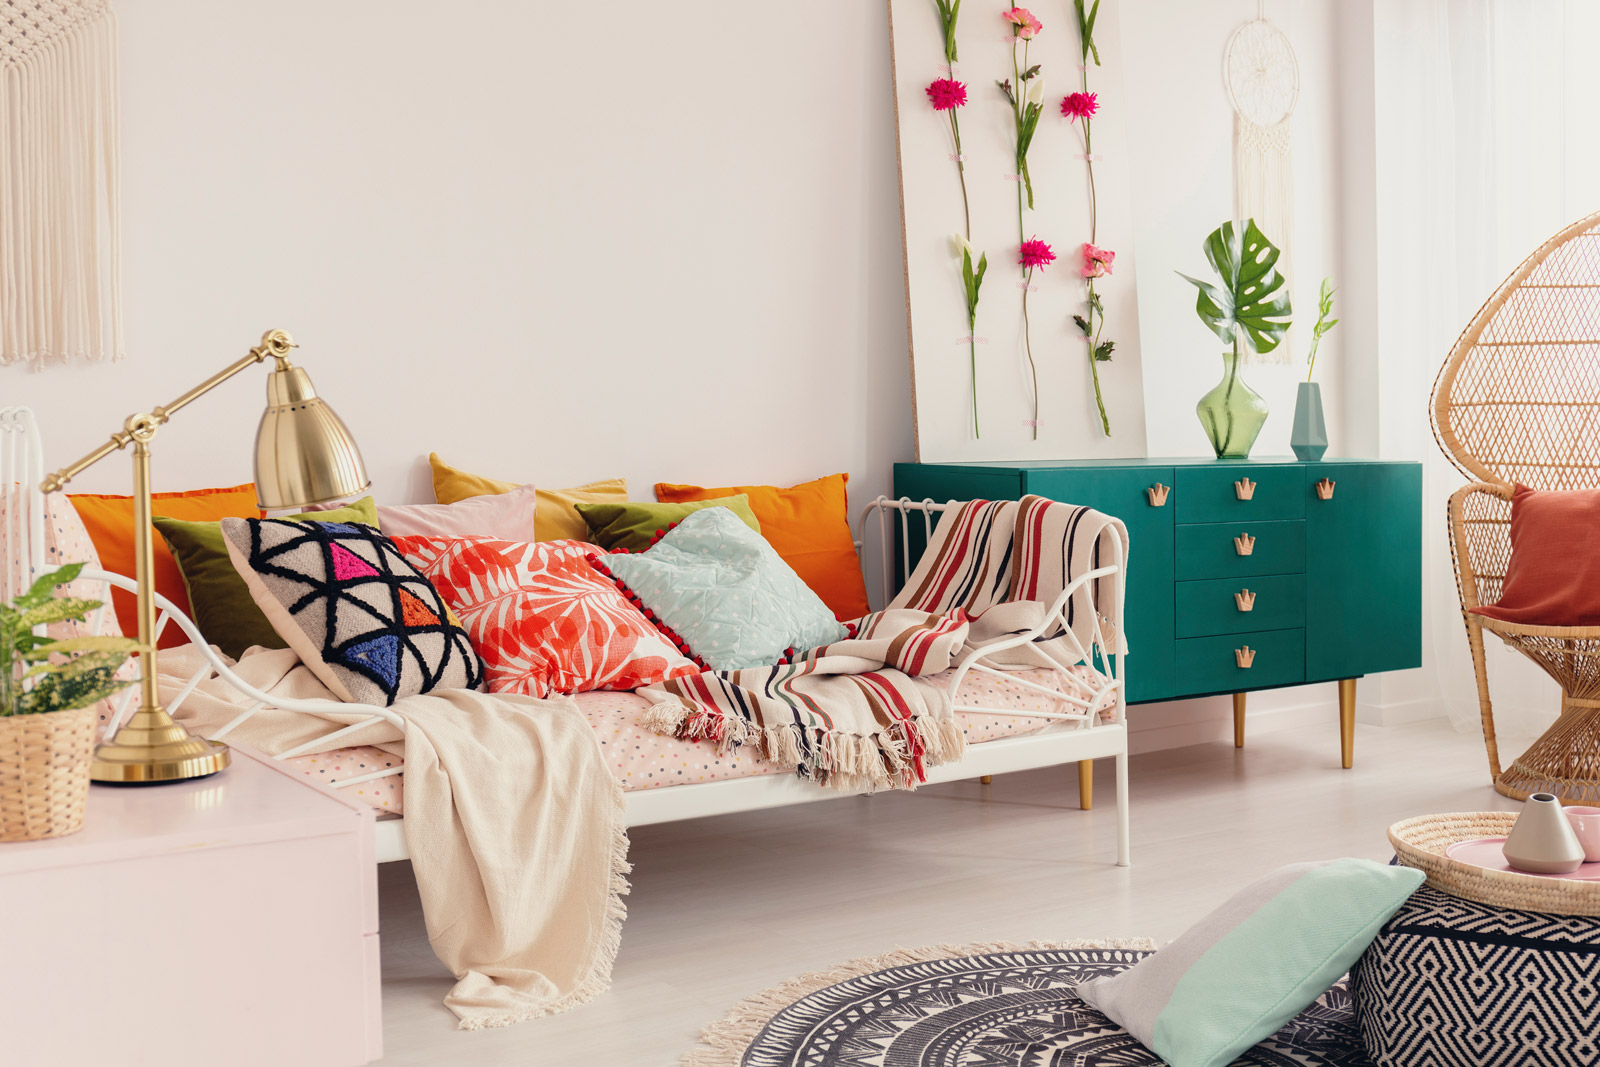 Day Bed with Teal Credenza